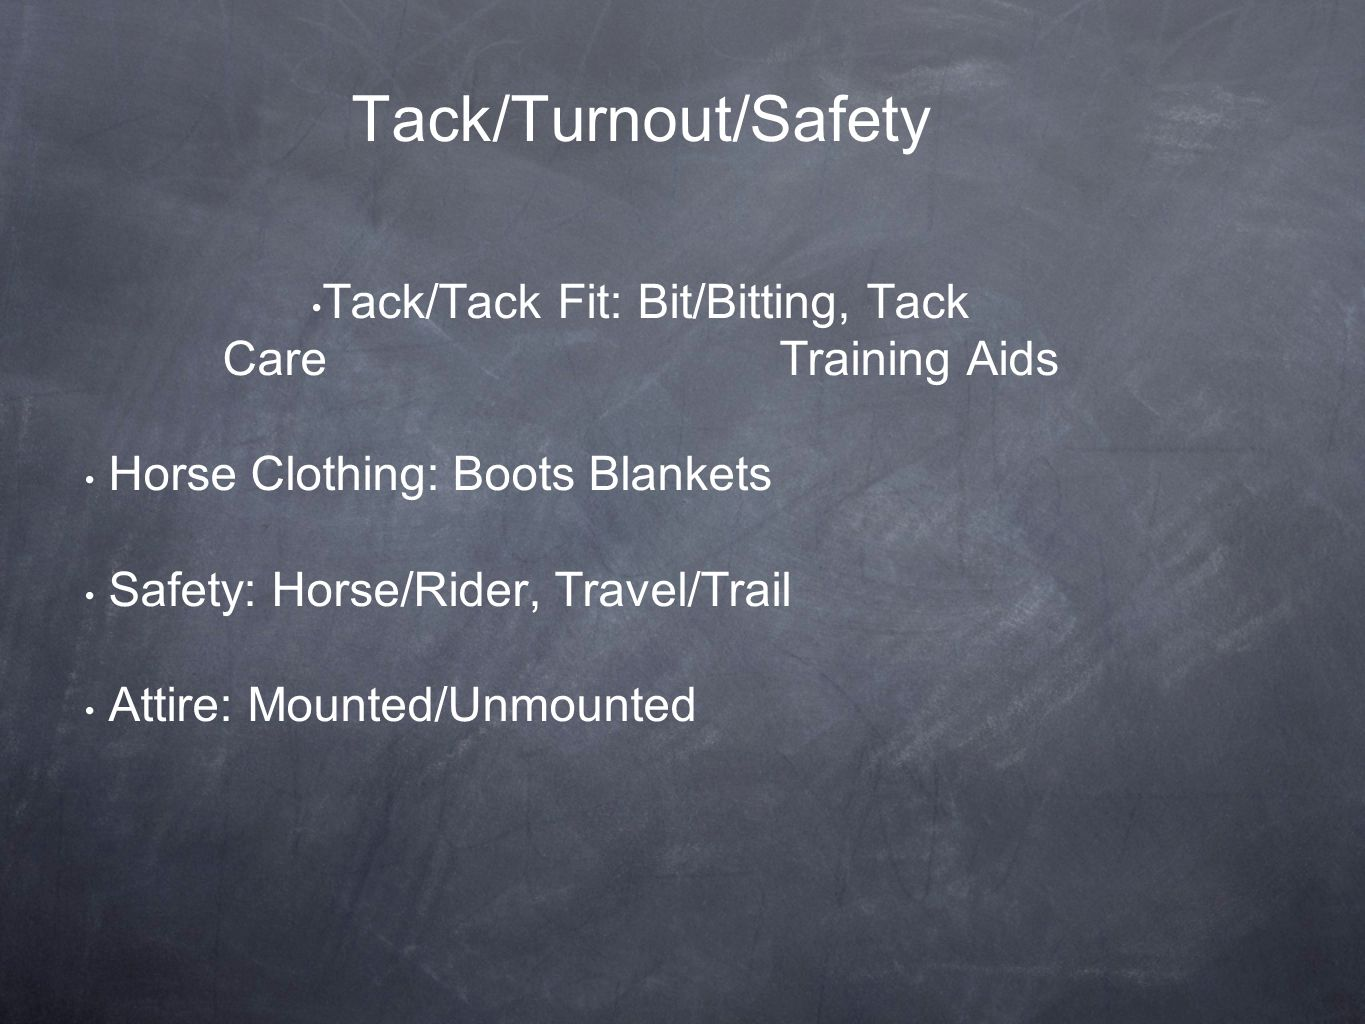 Tack/Turnout/Safety Tack/Tack Fit: Bit/Bitting, Tack Care Training Aids Horse Clothing: Boots Blankets Safety: Horse/Rider, Travel/Trail Attire: Mounted/Unmounted